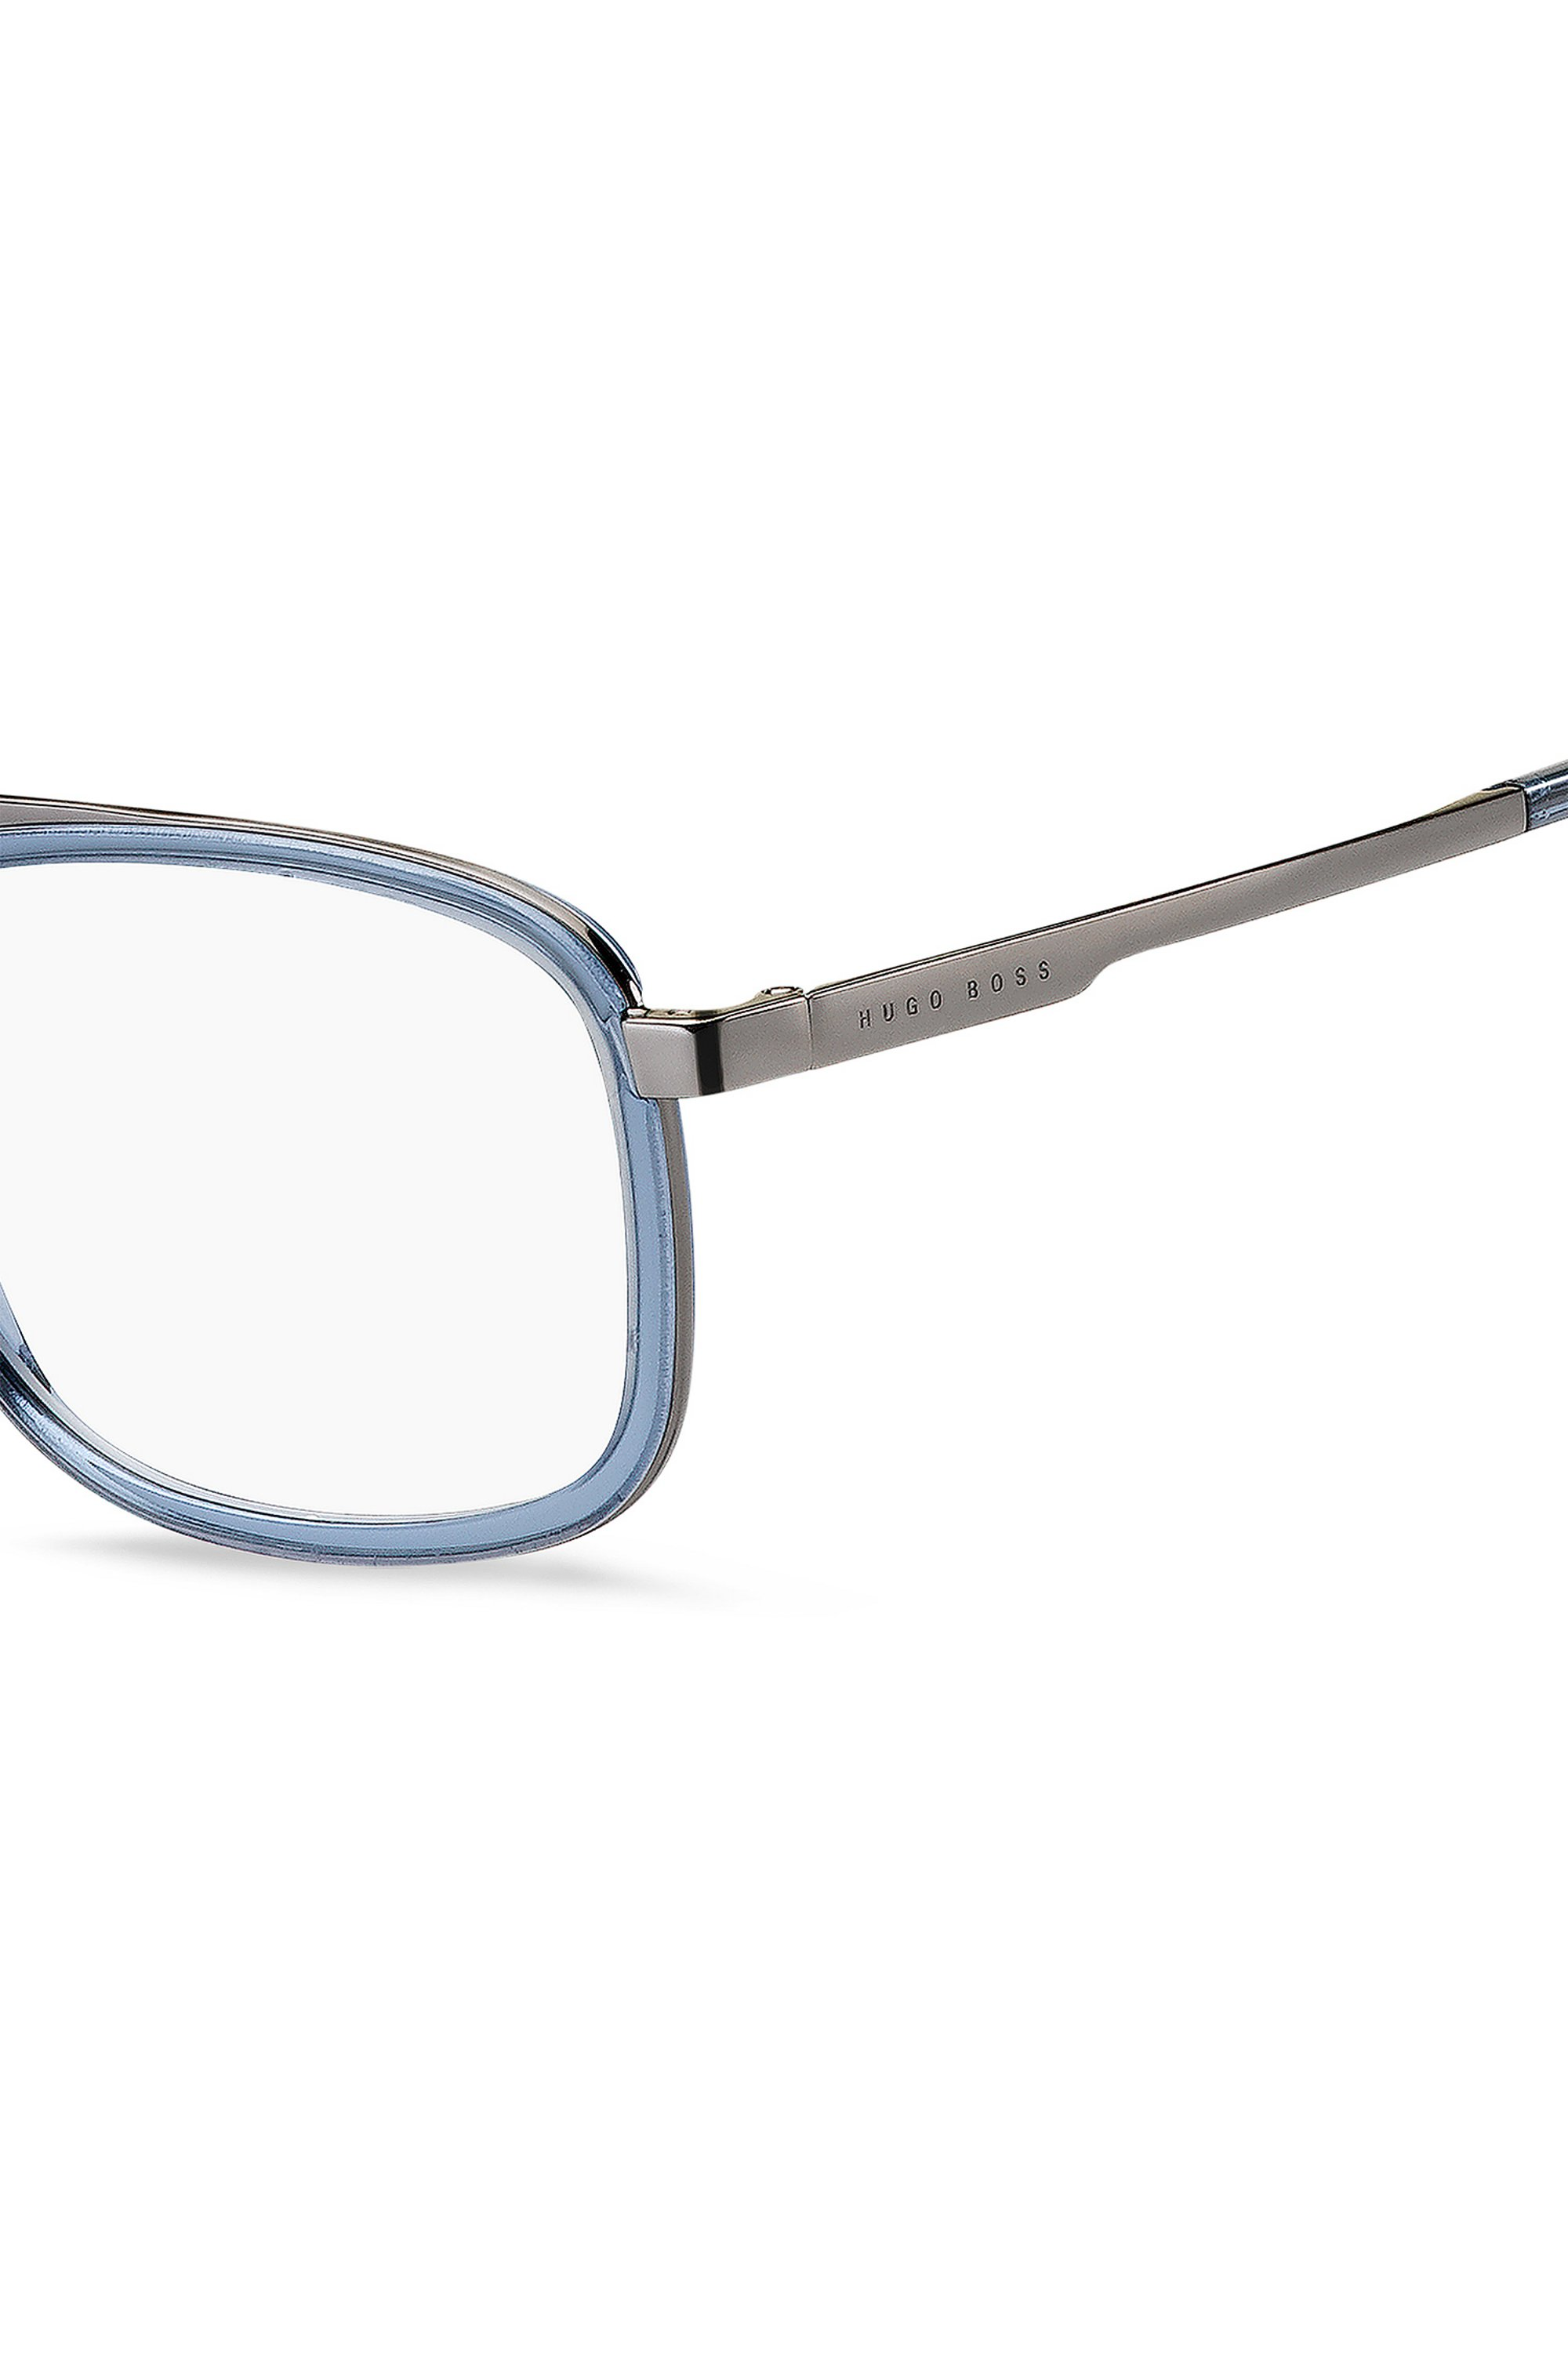 Optical frames in blue acetate with double bridge